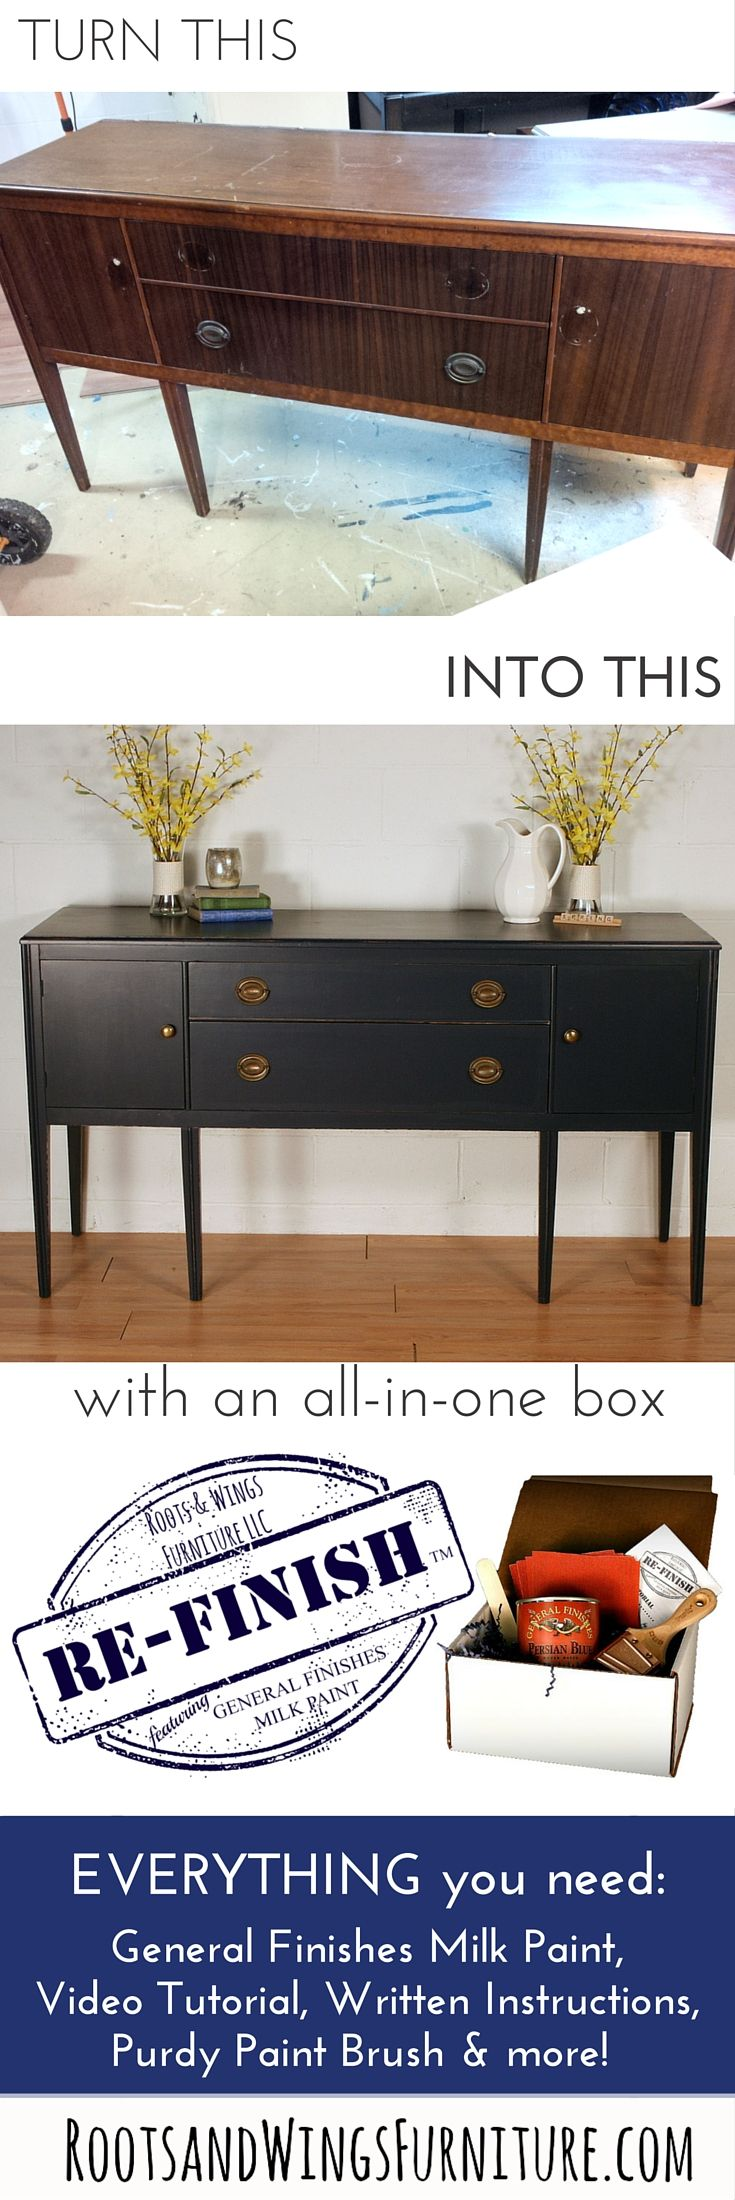 A shabby thrift store buffet turned into a navy blue beauty with General Finishes Coastal Blue Milk Paint.  You can transform a piece of furniture too with this Re-Finish kit!